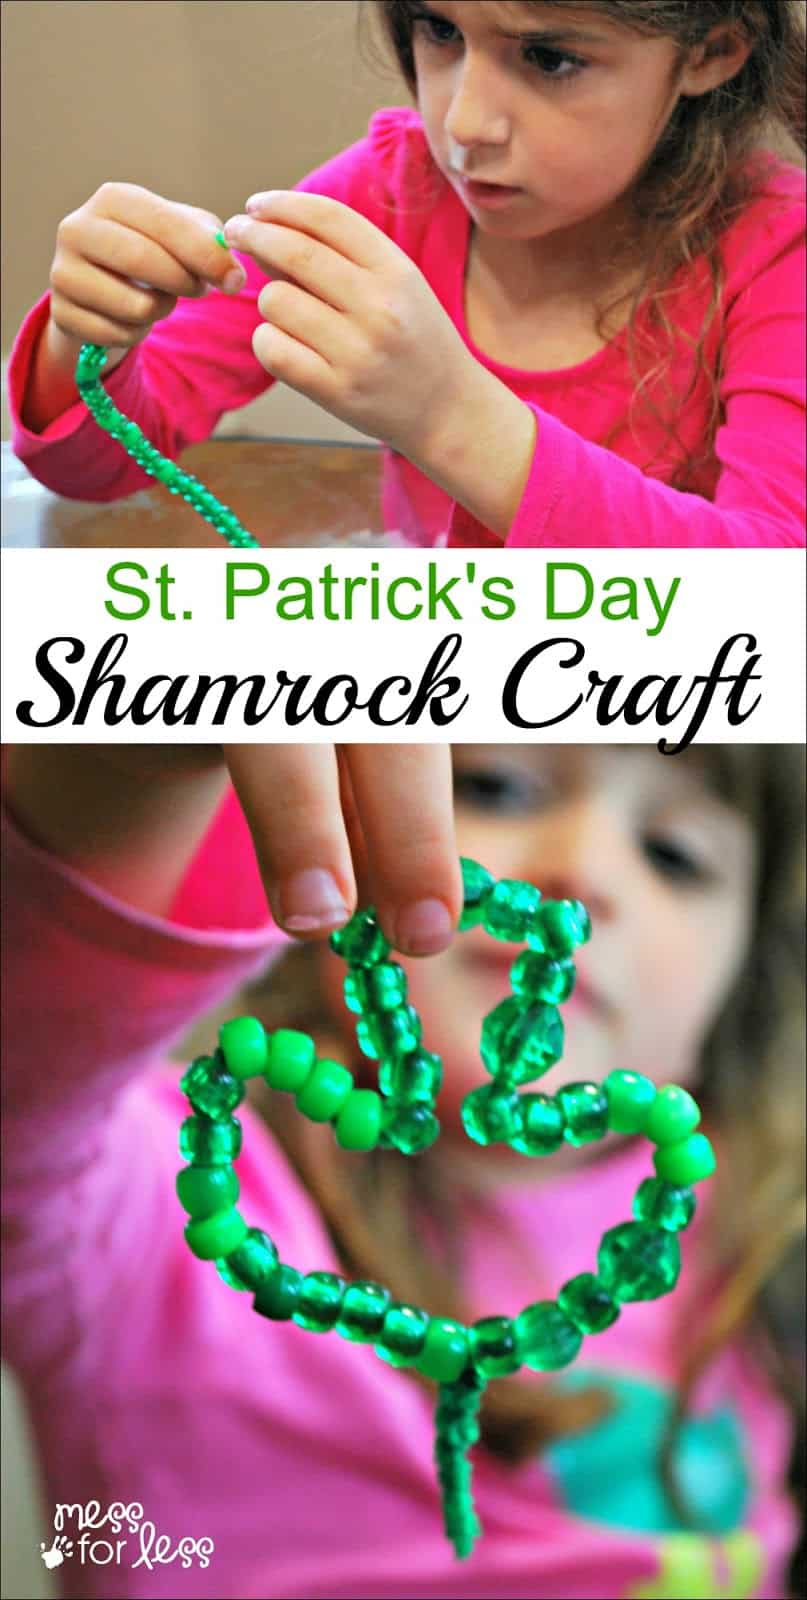 St. Patrick's Day Shamrock Craft - a fun and simple kids crafts that also reinforces fine motor skills.